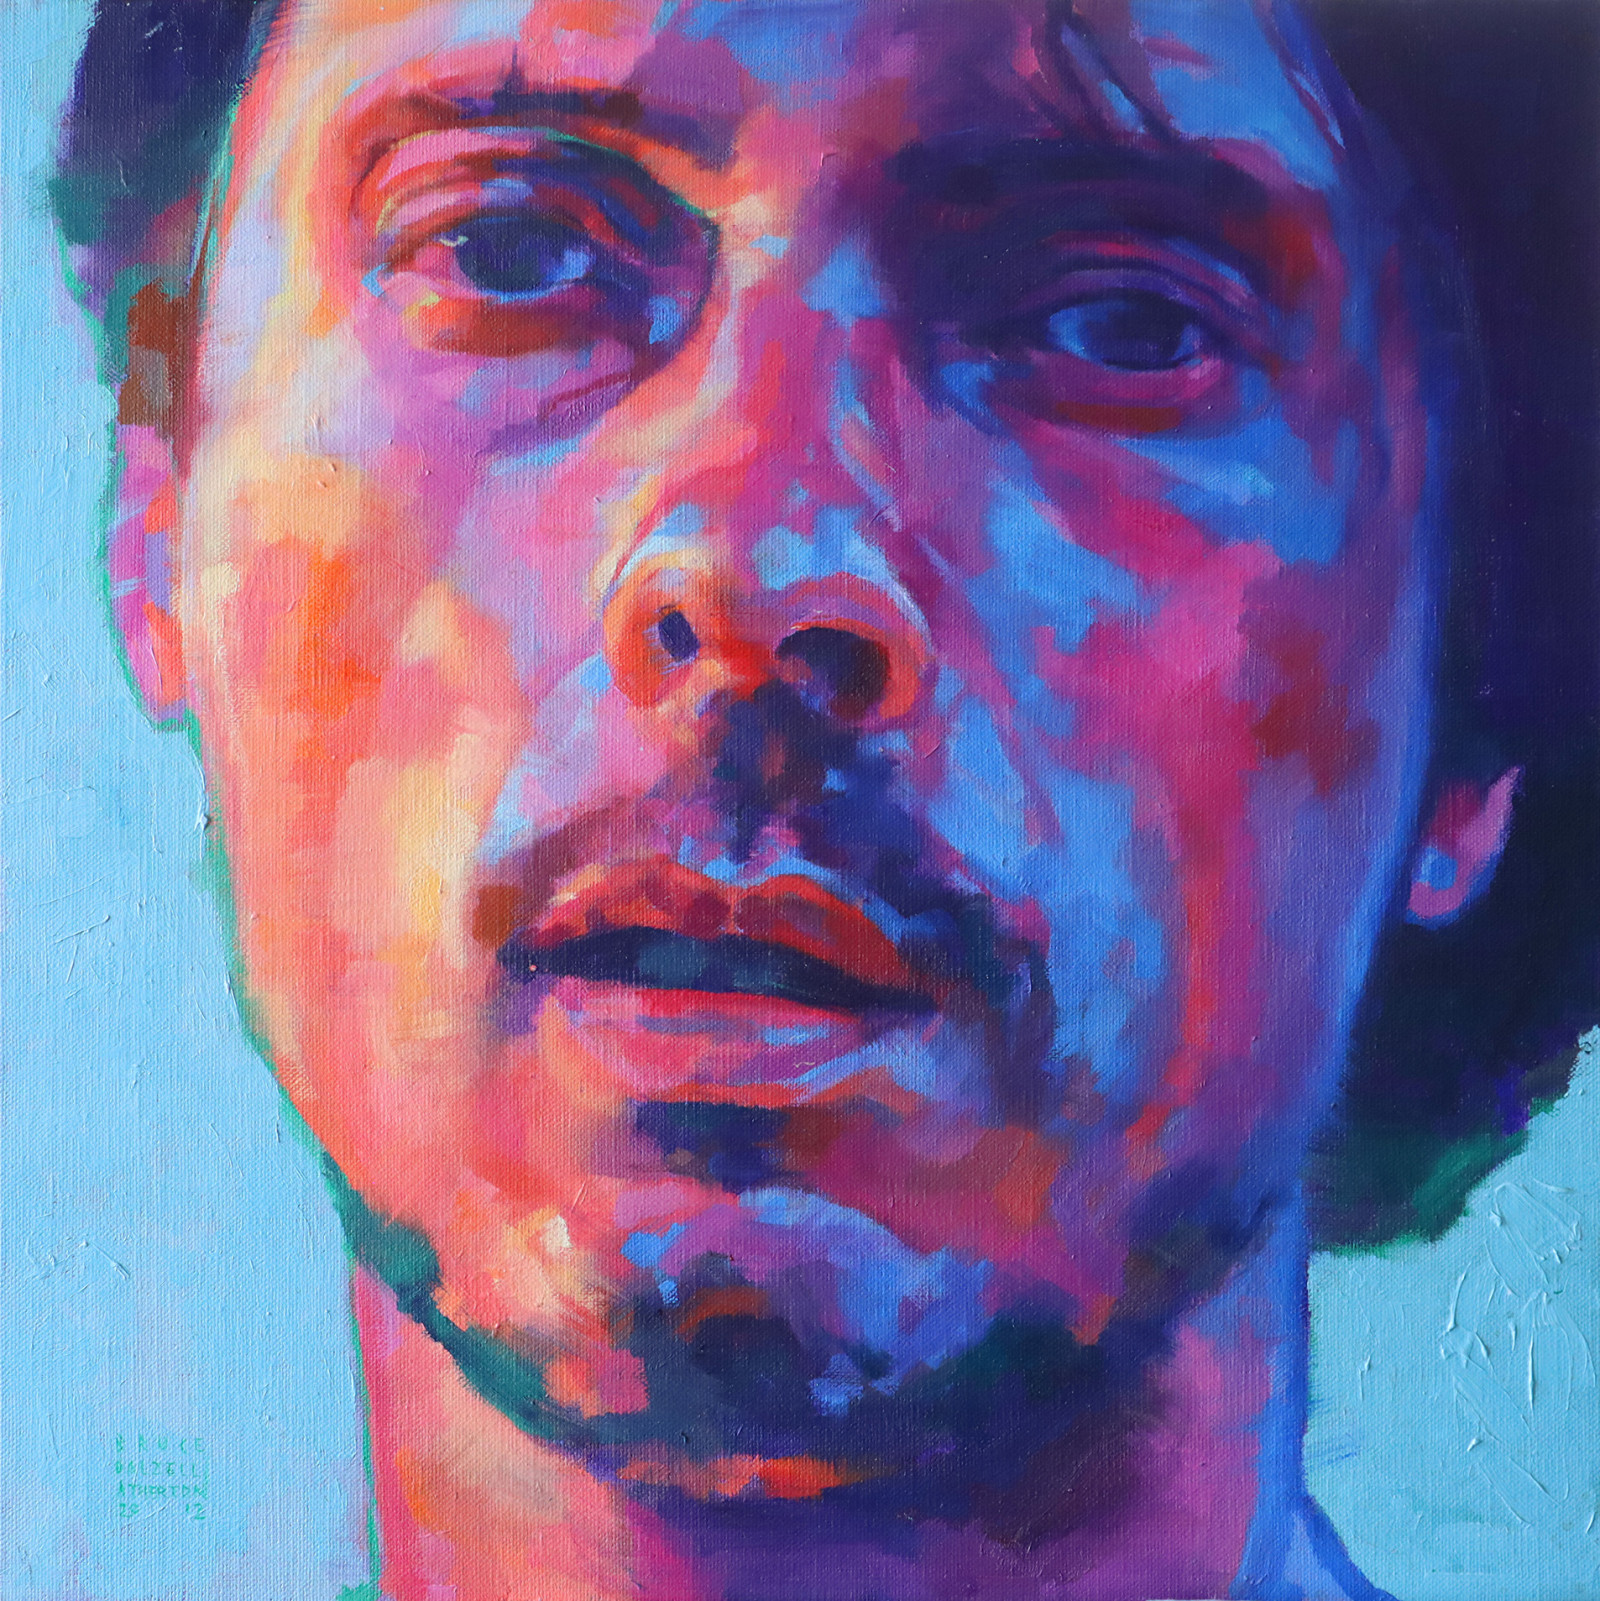 power_mikkel_by_bruce_atherton_2012_40_x_40cm_oil_on_canvas.jpg